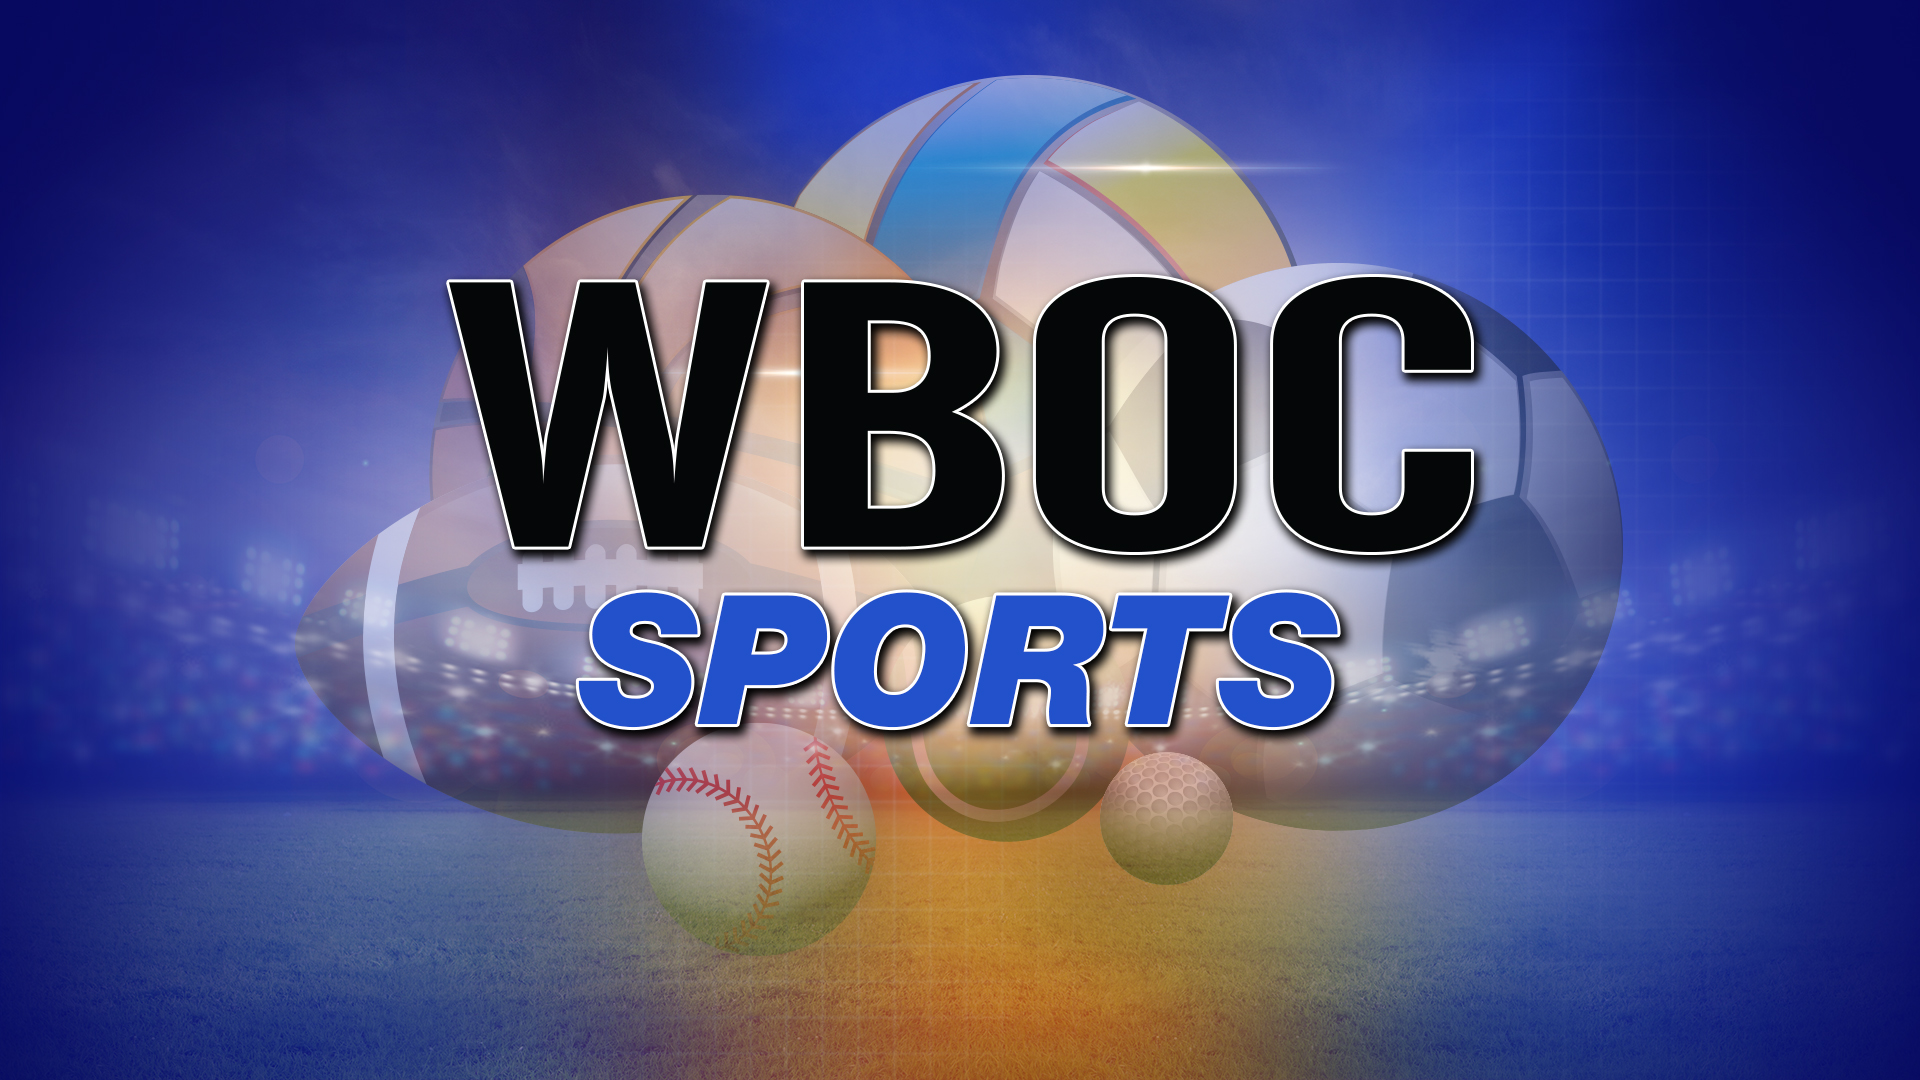 WBOC Sports Report: Thursday, November 19, 2015